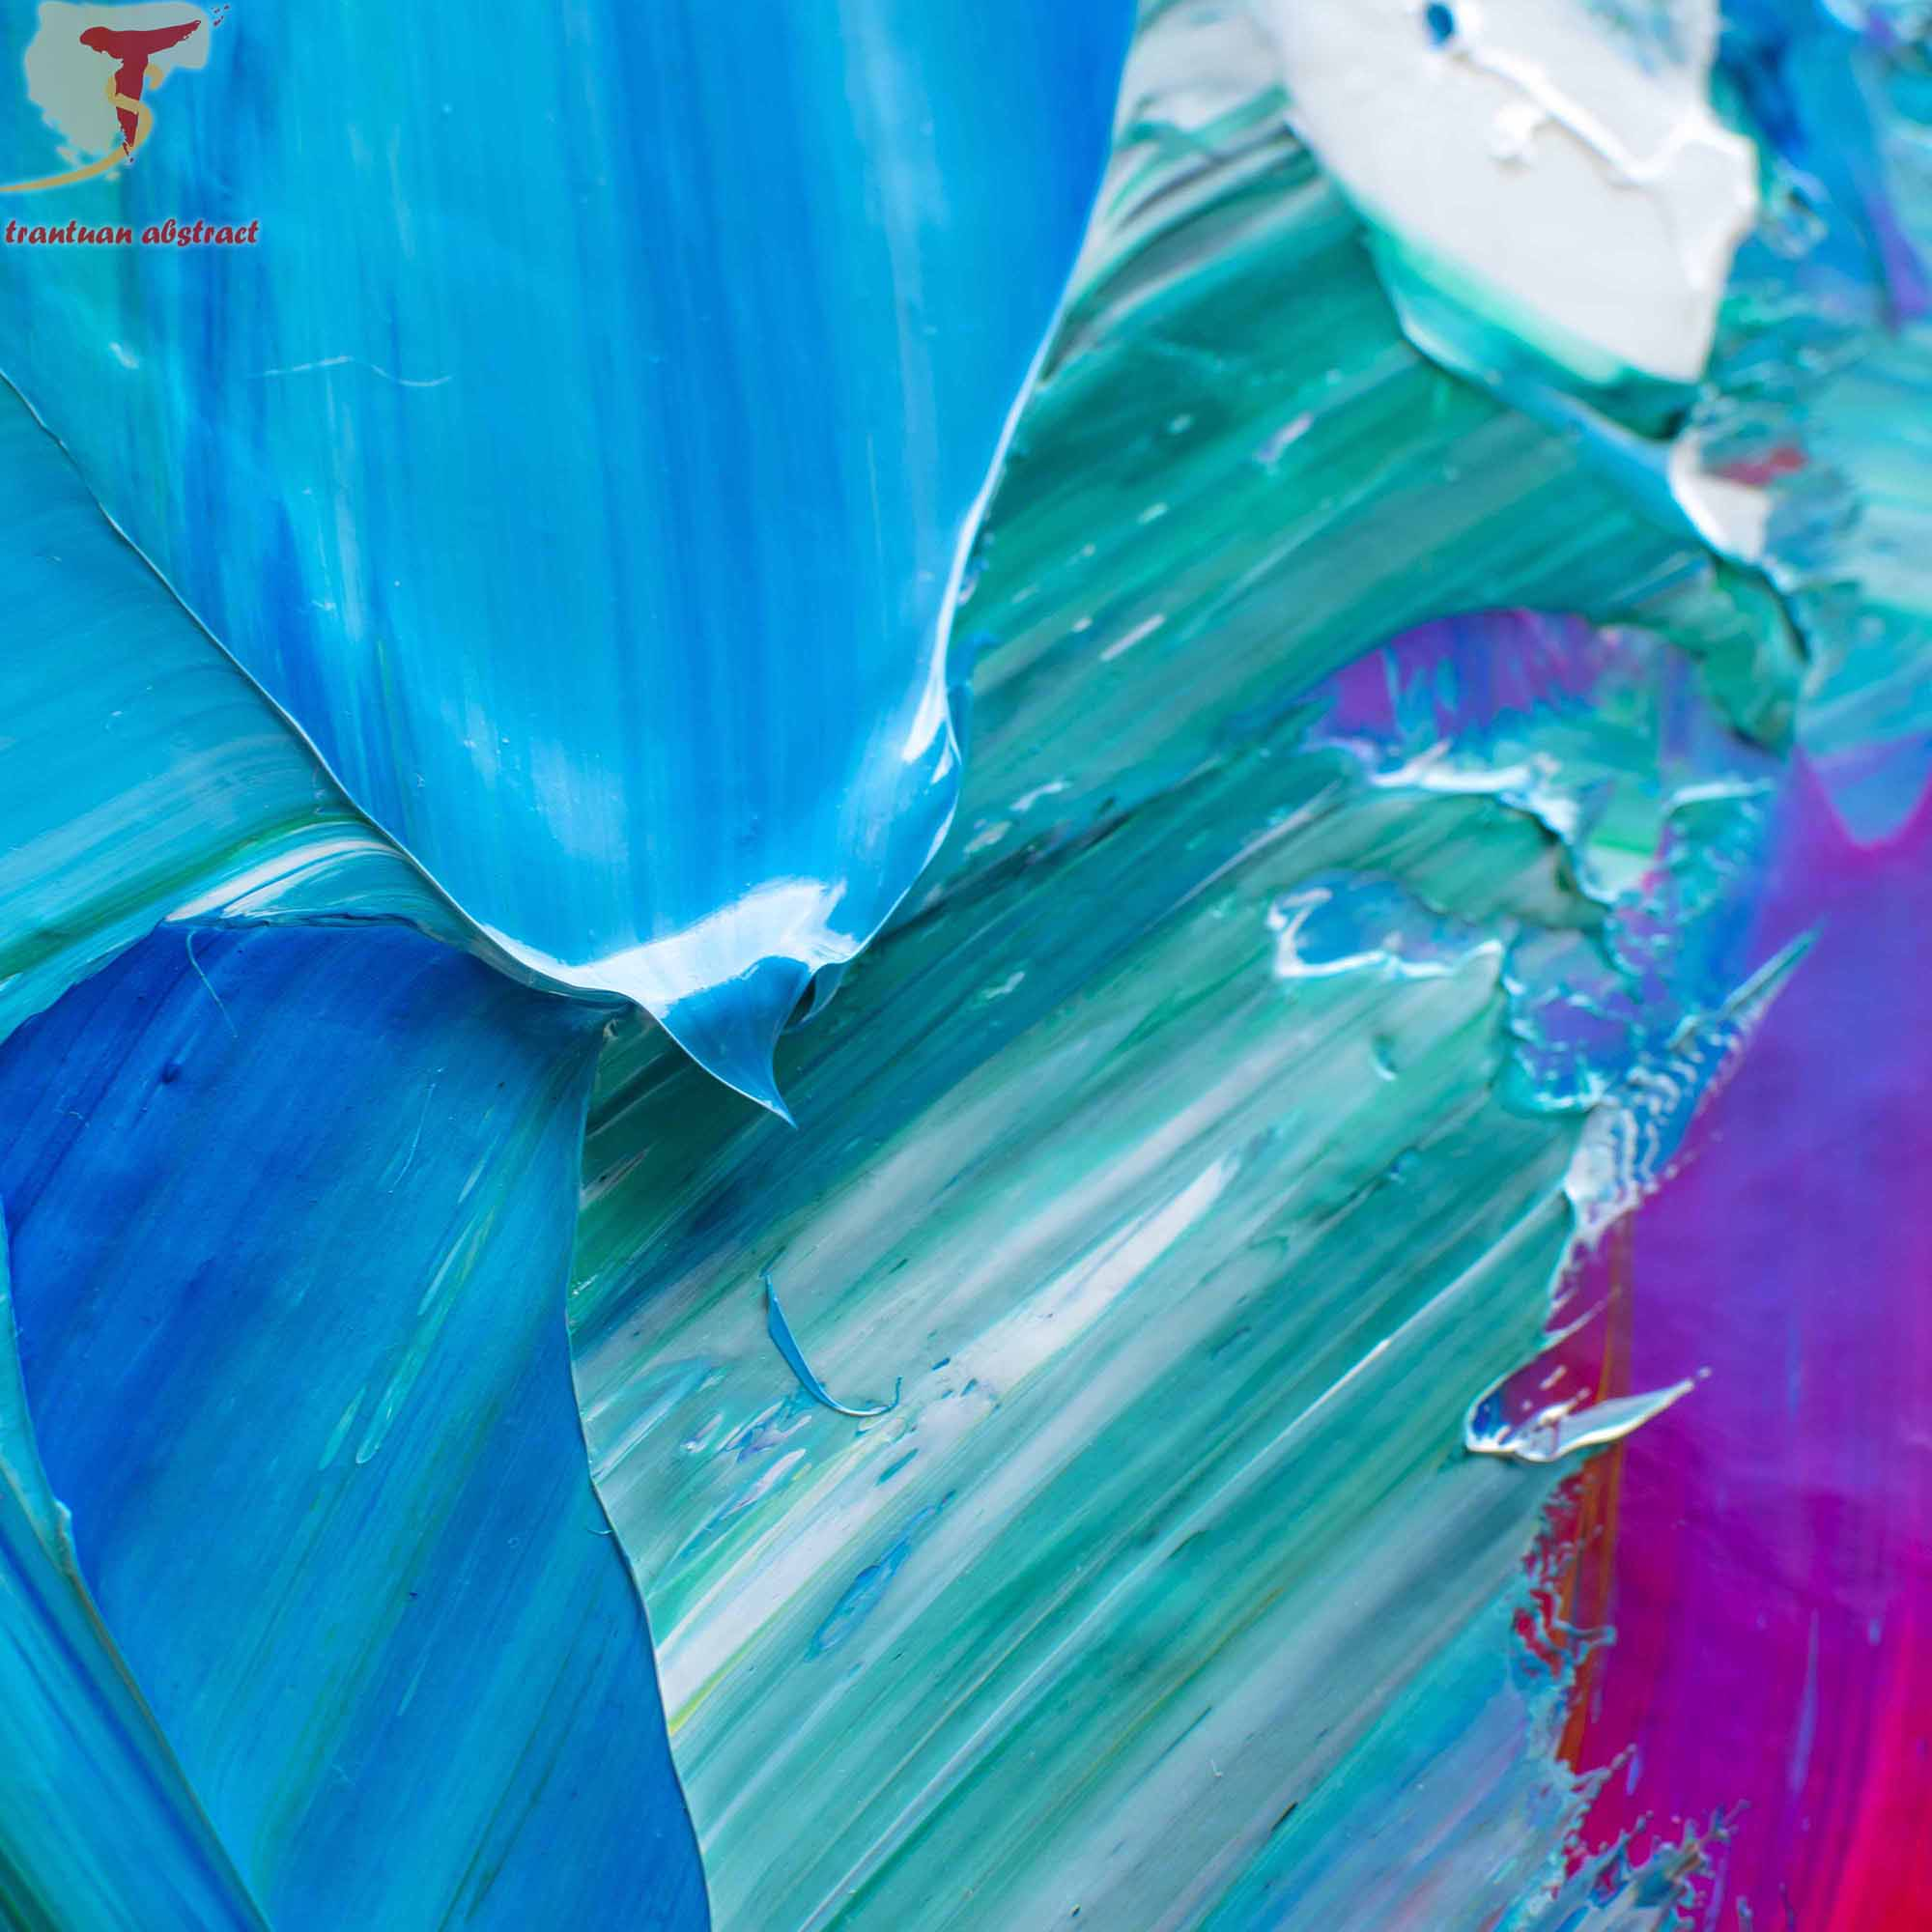 Tran Tuan Abstract Rhythm of Nature 2021 135 x 80 x 5 cm Acrylic on Canvas Painting Detail